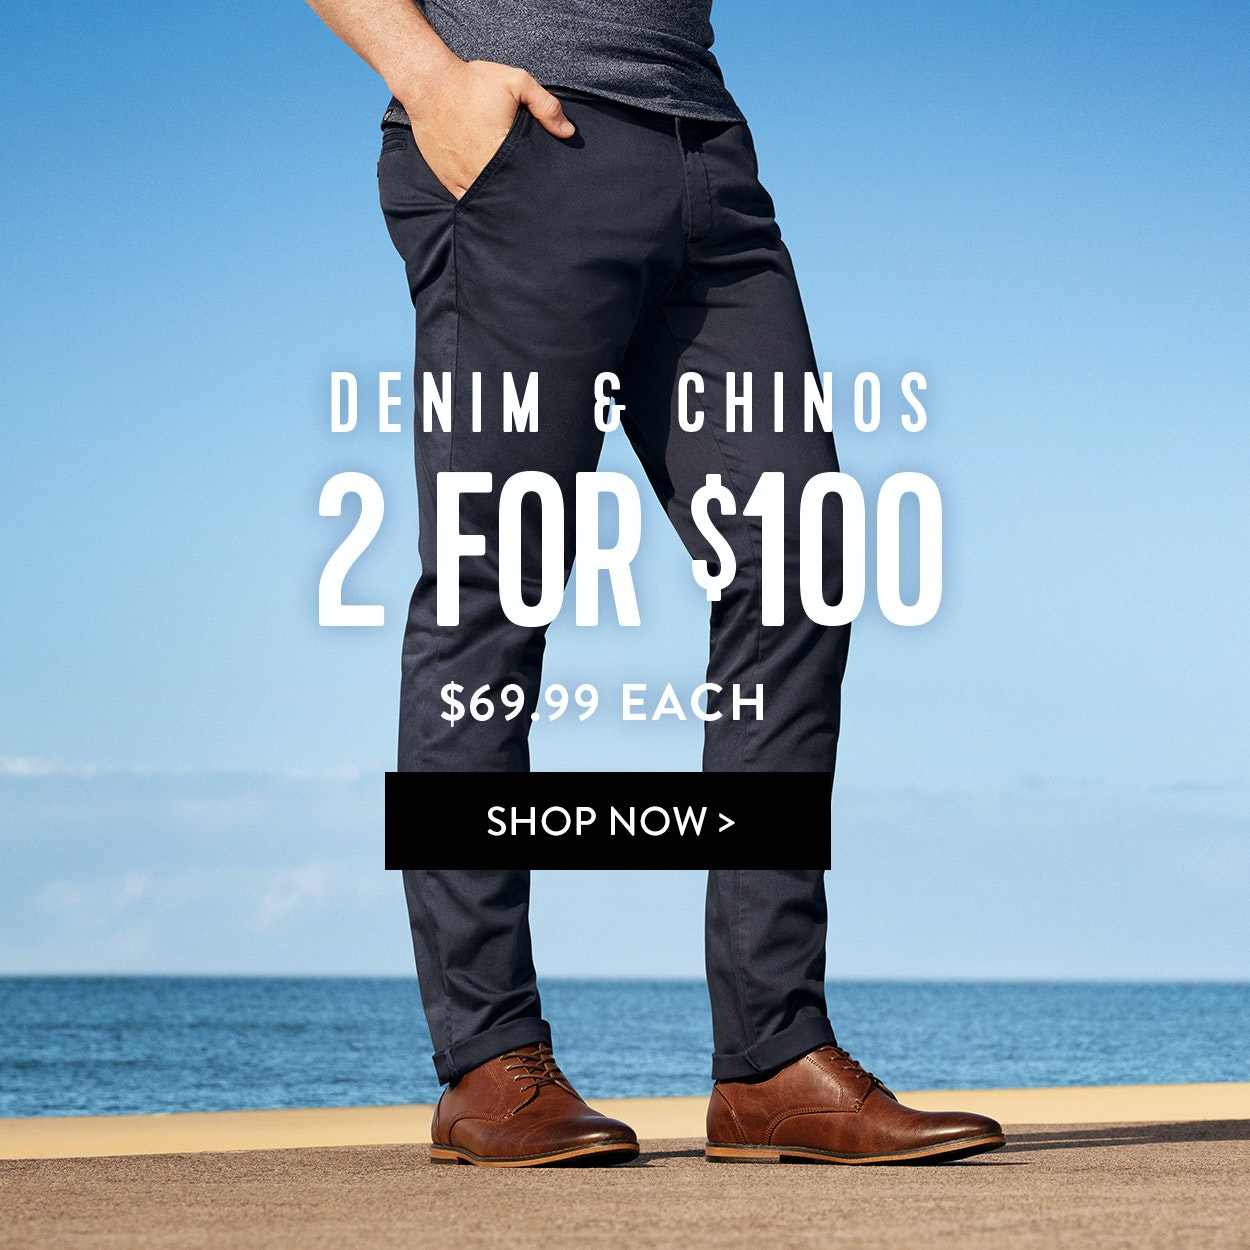 Get 2 for $100 Chinos & Denim Jeans